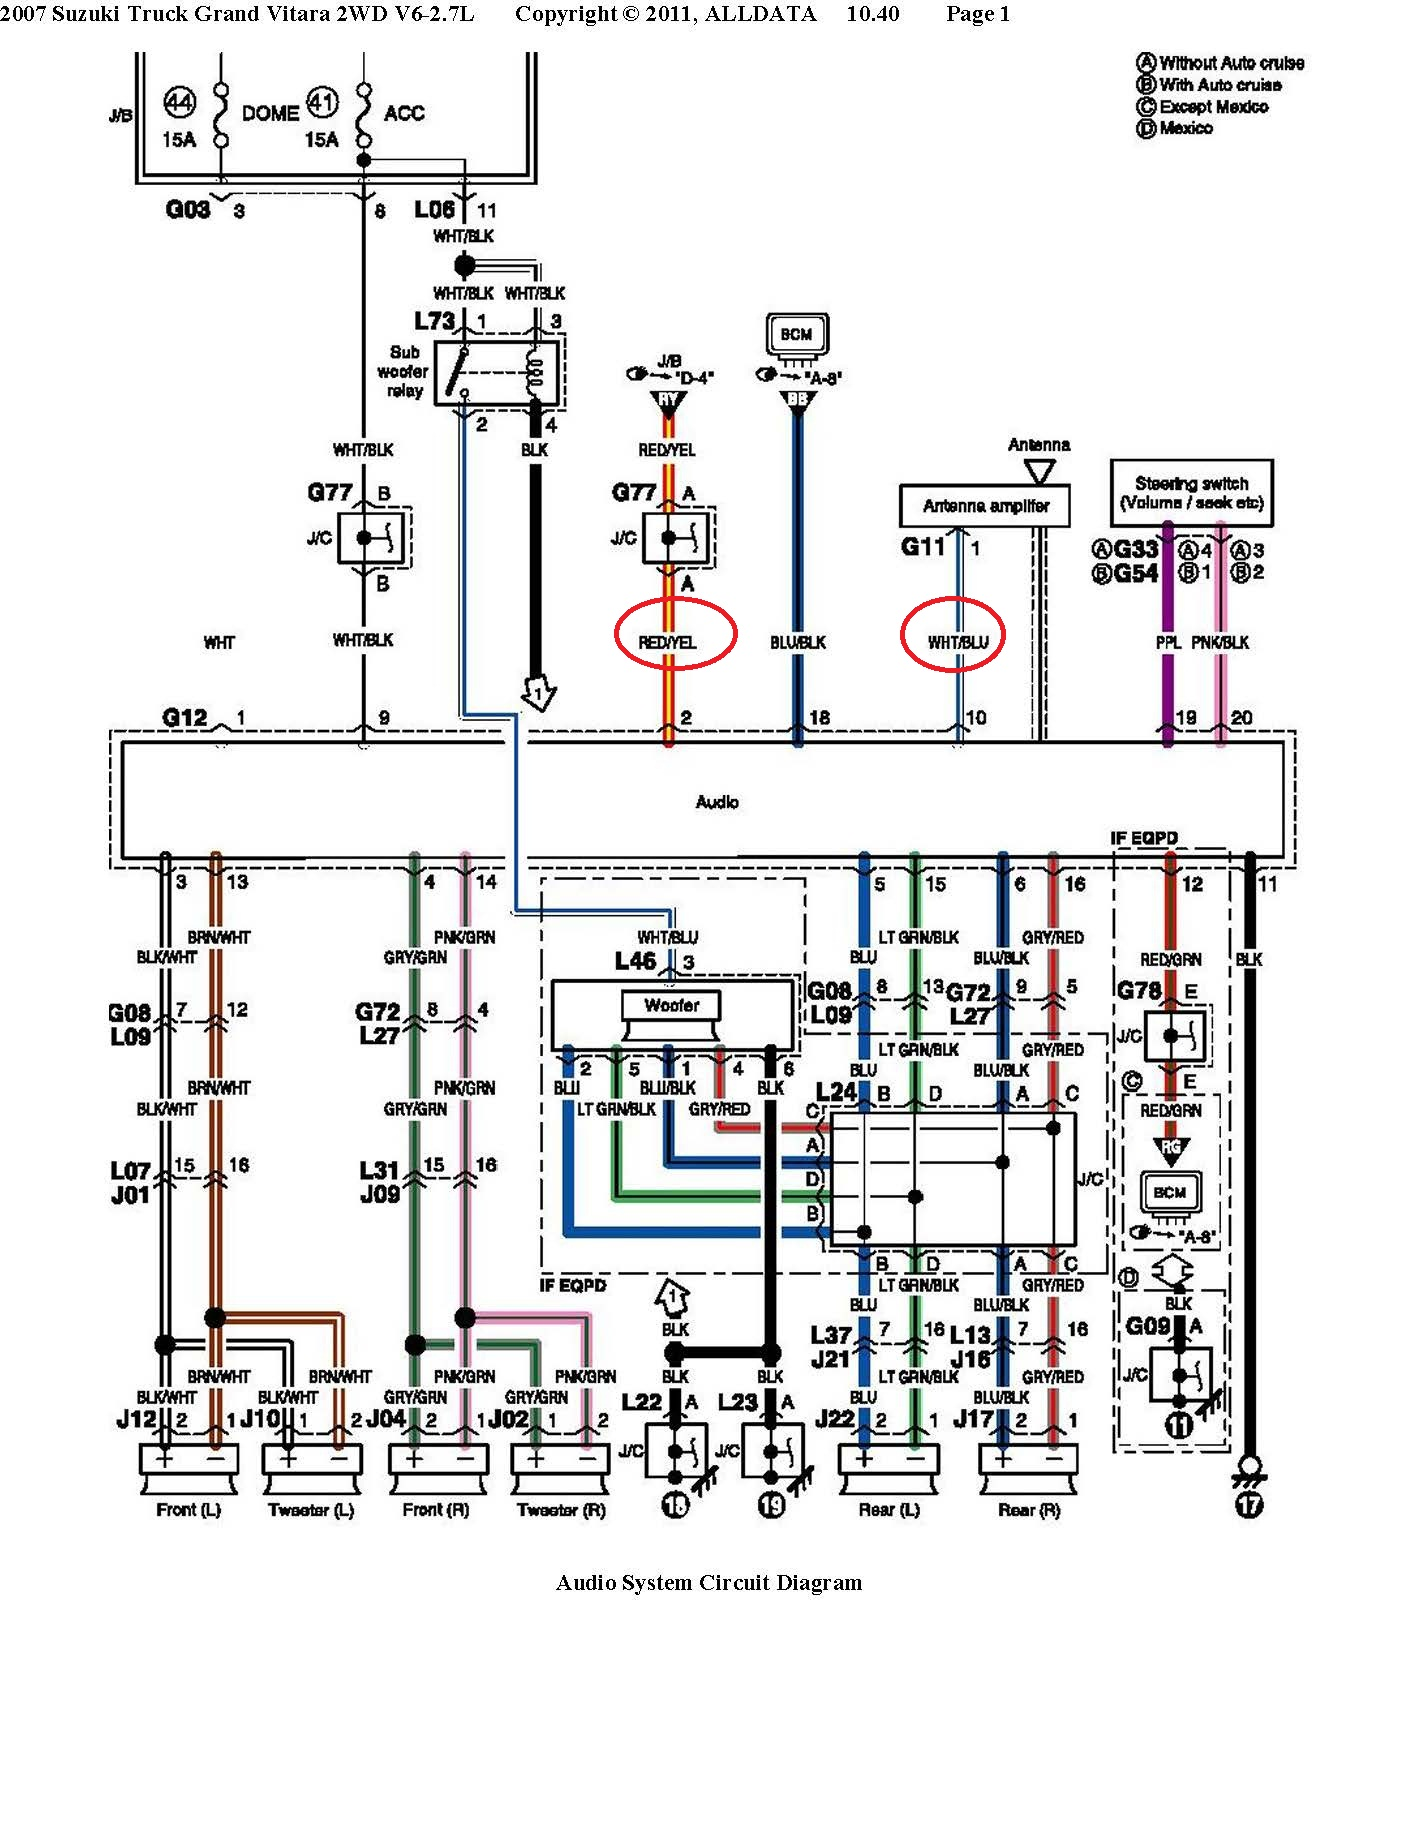 Suzuki Car Radio Stereo Audio Wiring Diagram Autoradio Connector Old Colors Wire Installation Schematic Schema Esquema De Conexiones Stecker Konektor Connecteur Cable